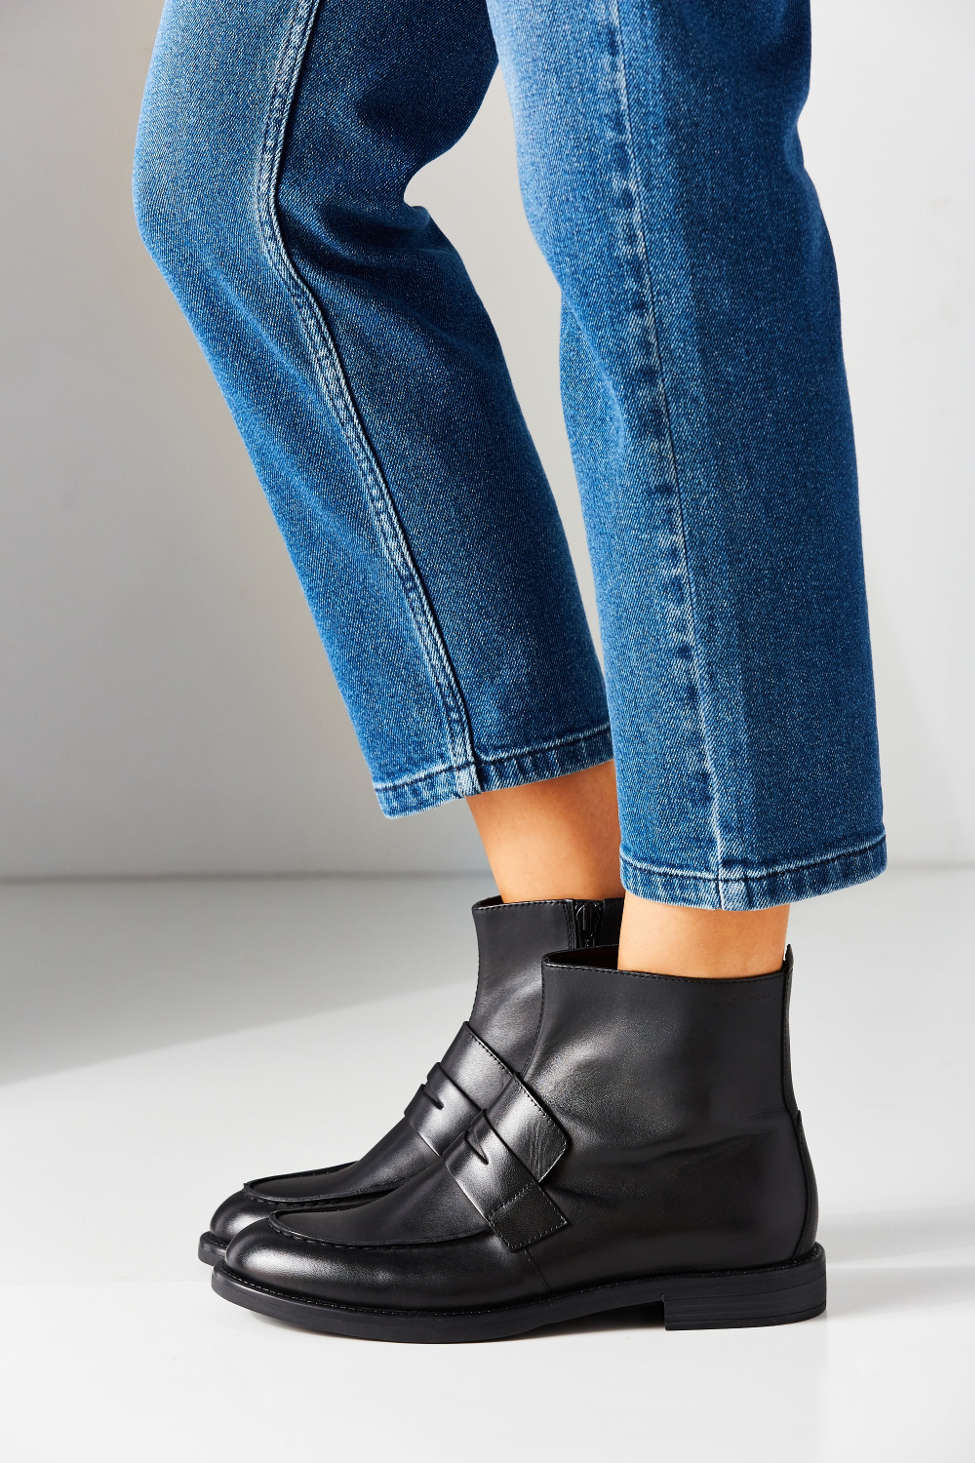 http://www.urbanoutfitters.com/urban/catalog/productdetail.jsp?id=38639571&category=W_SHOES_BOOTS